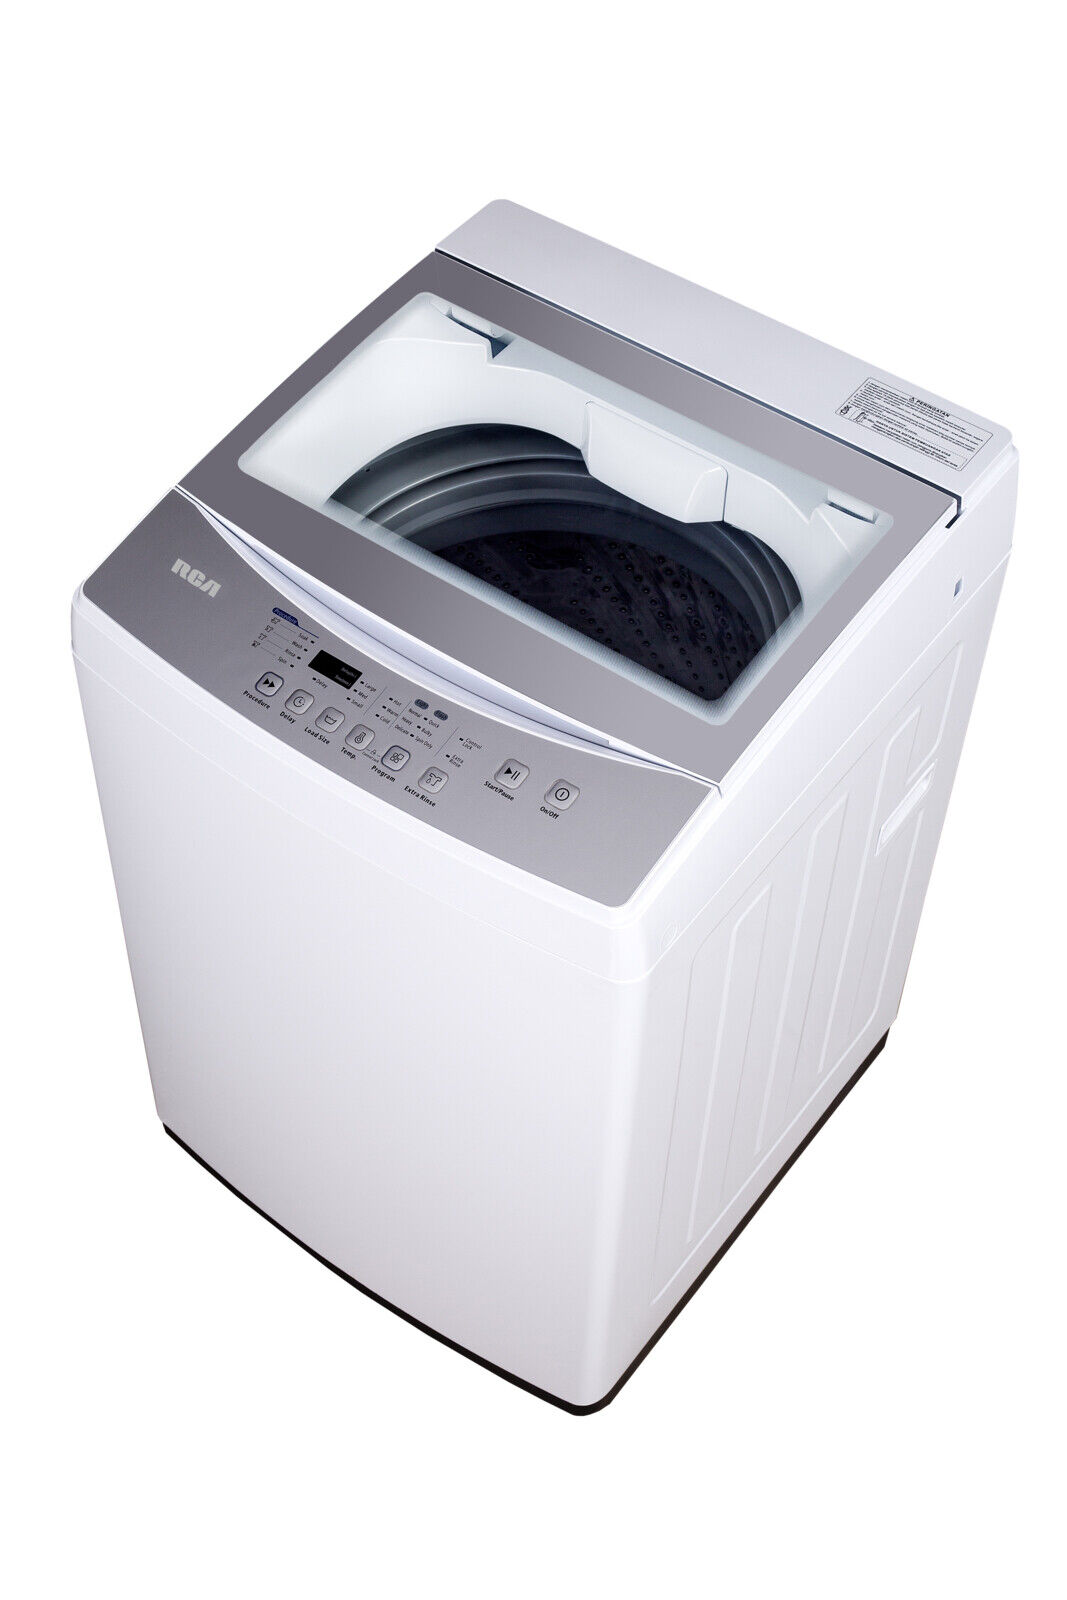 NEW Amazing 2.1 cu ft Portable Washer With Pulsator wash sys